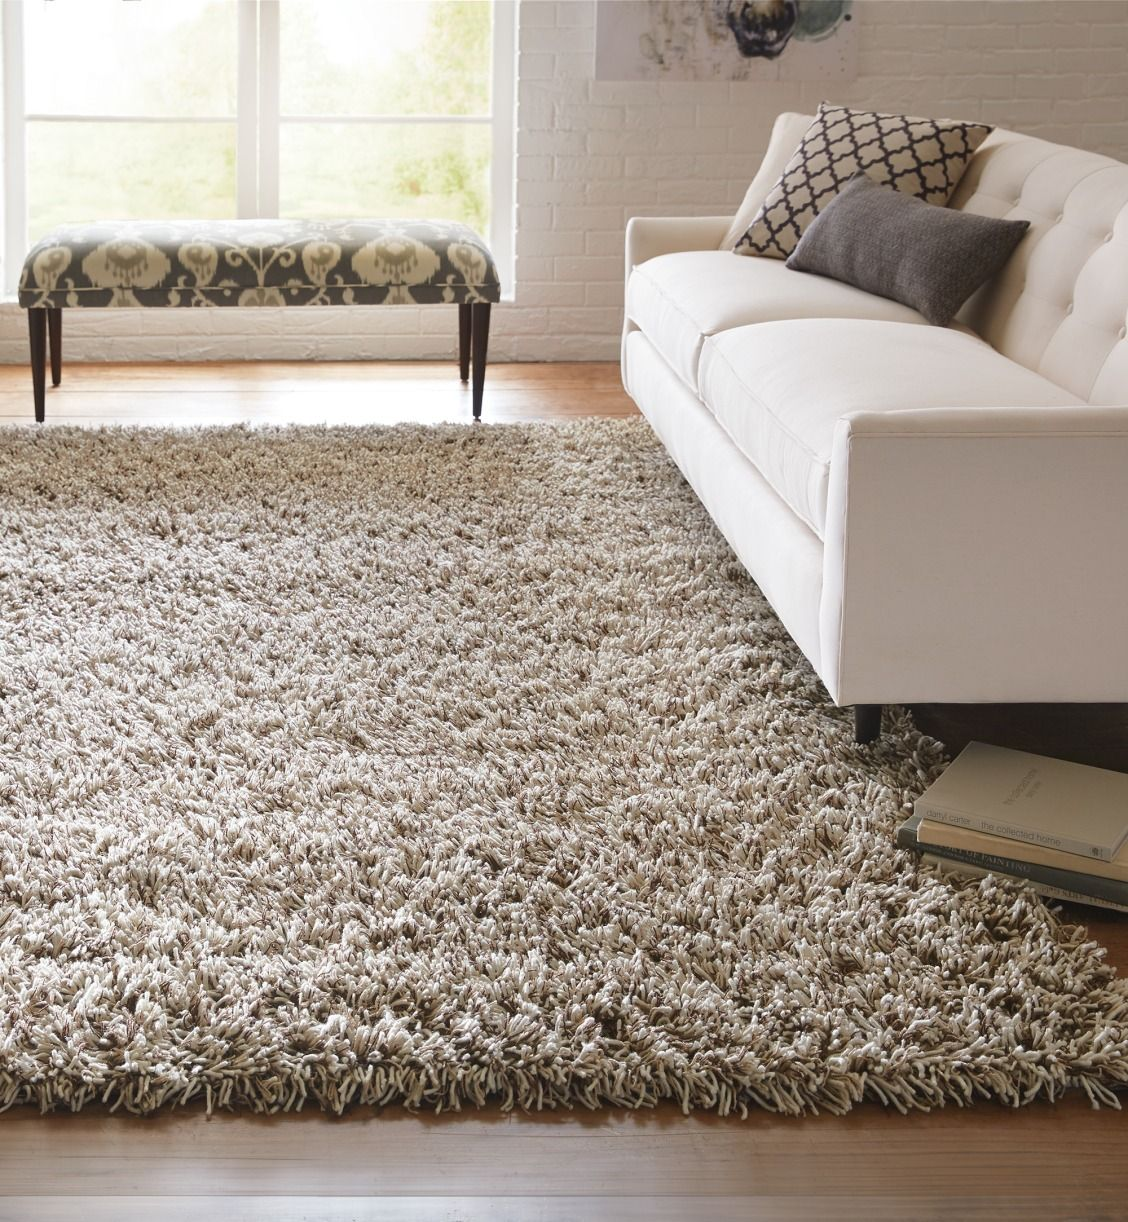 Stay Cozy Inside With A Shag Rug Our Cozy Shag Rug Comes In A Large Selection Of Colors To Fit You Rugs In Living Room Living Room Carpet Shag Rug Living